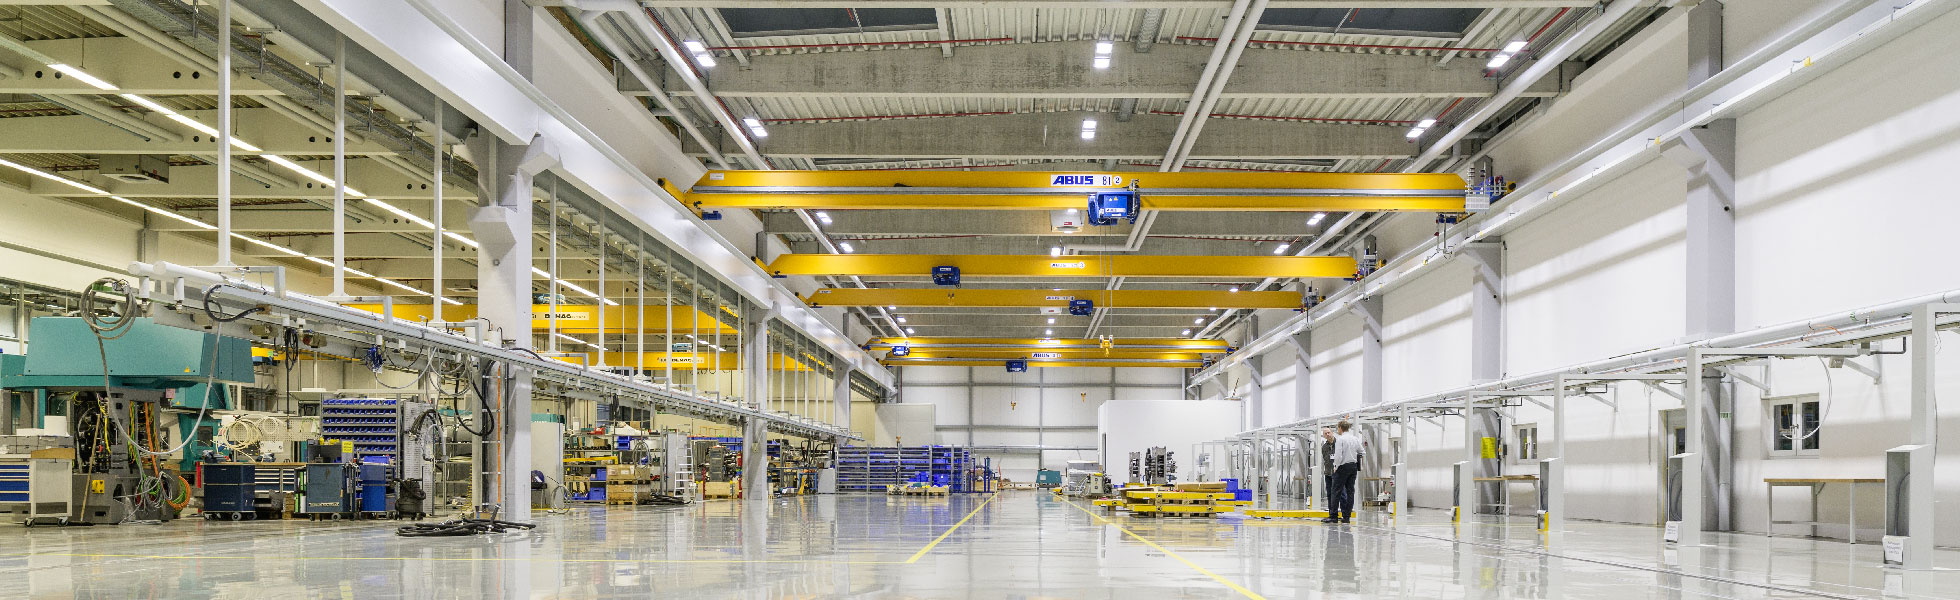 Industrie Led Led Industrie Innenbeleuchtung